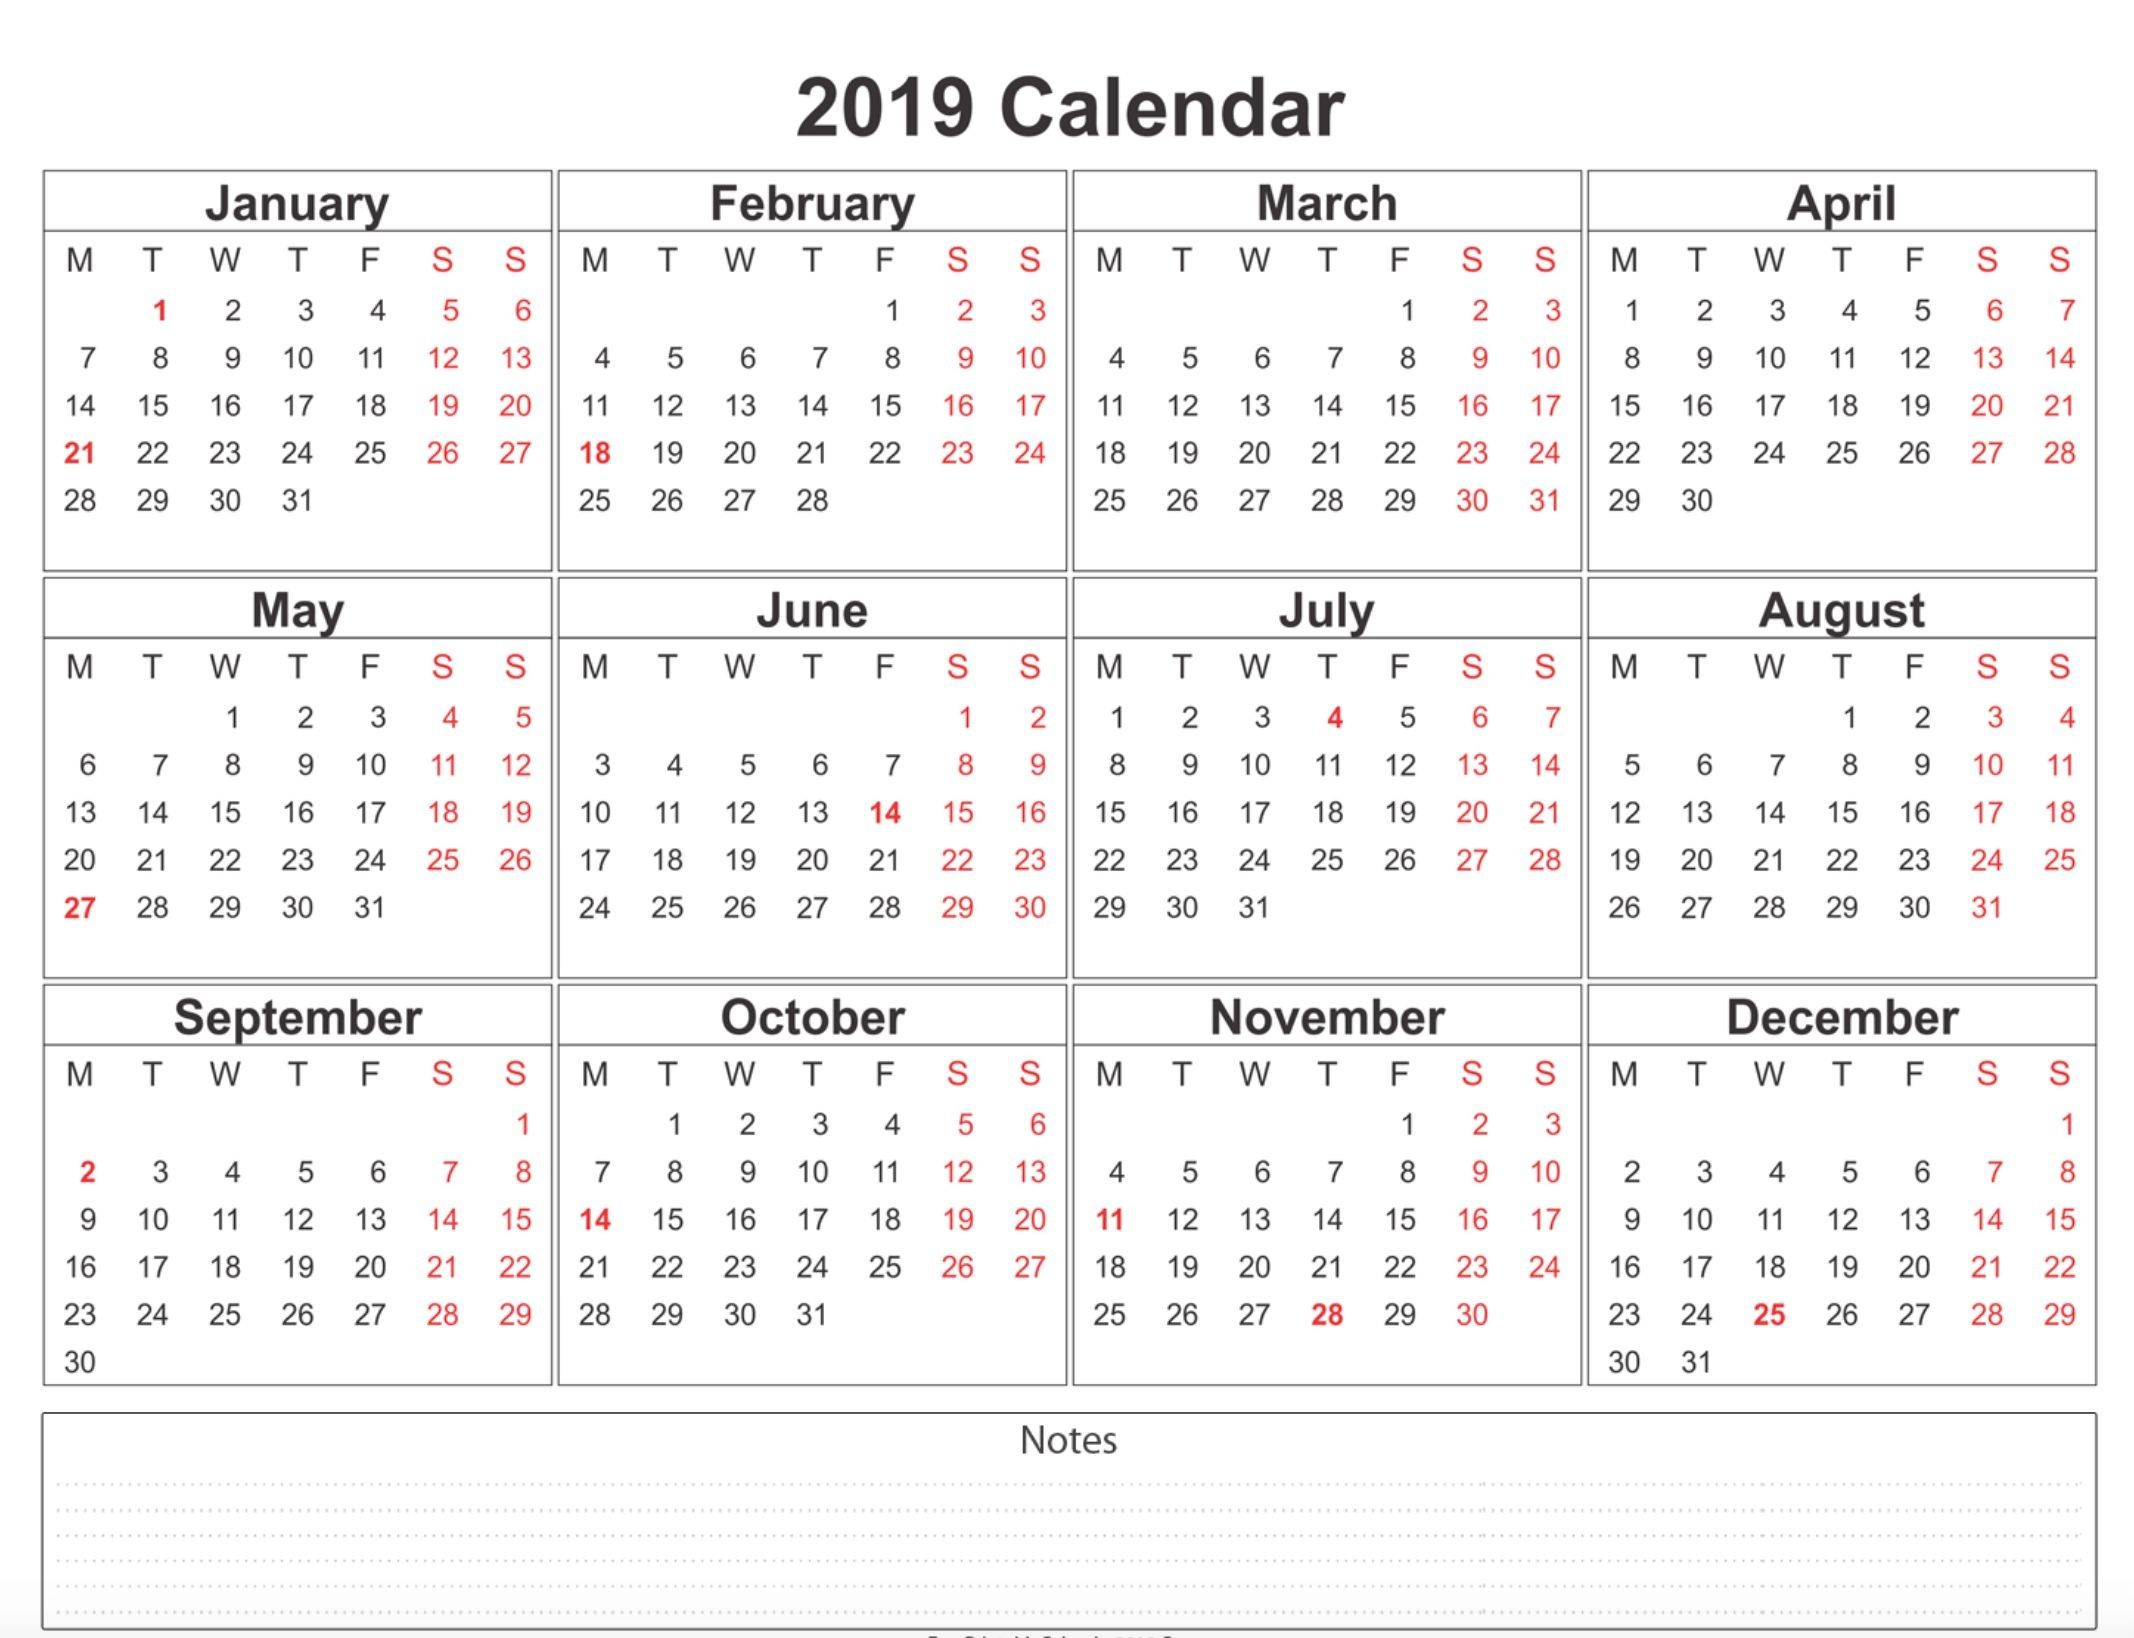 Free Printable 2019 Calendars 2019 Weekly Calendar Printable | 2019 Calendars | 12 month